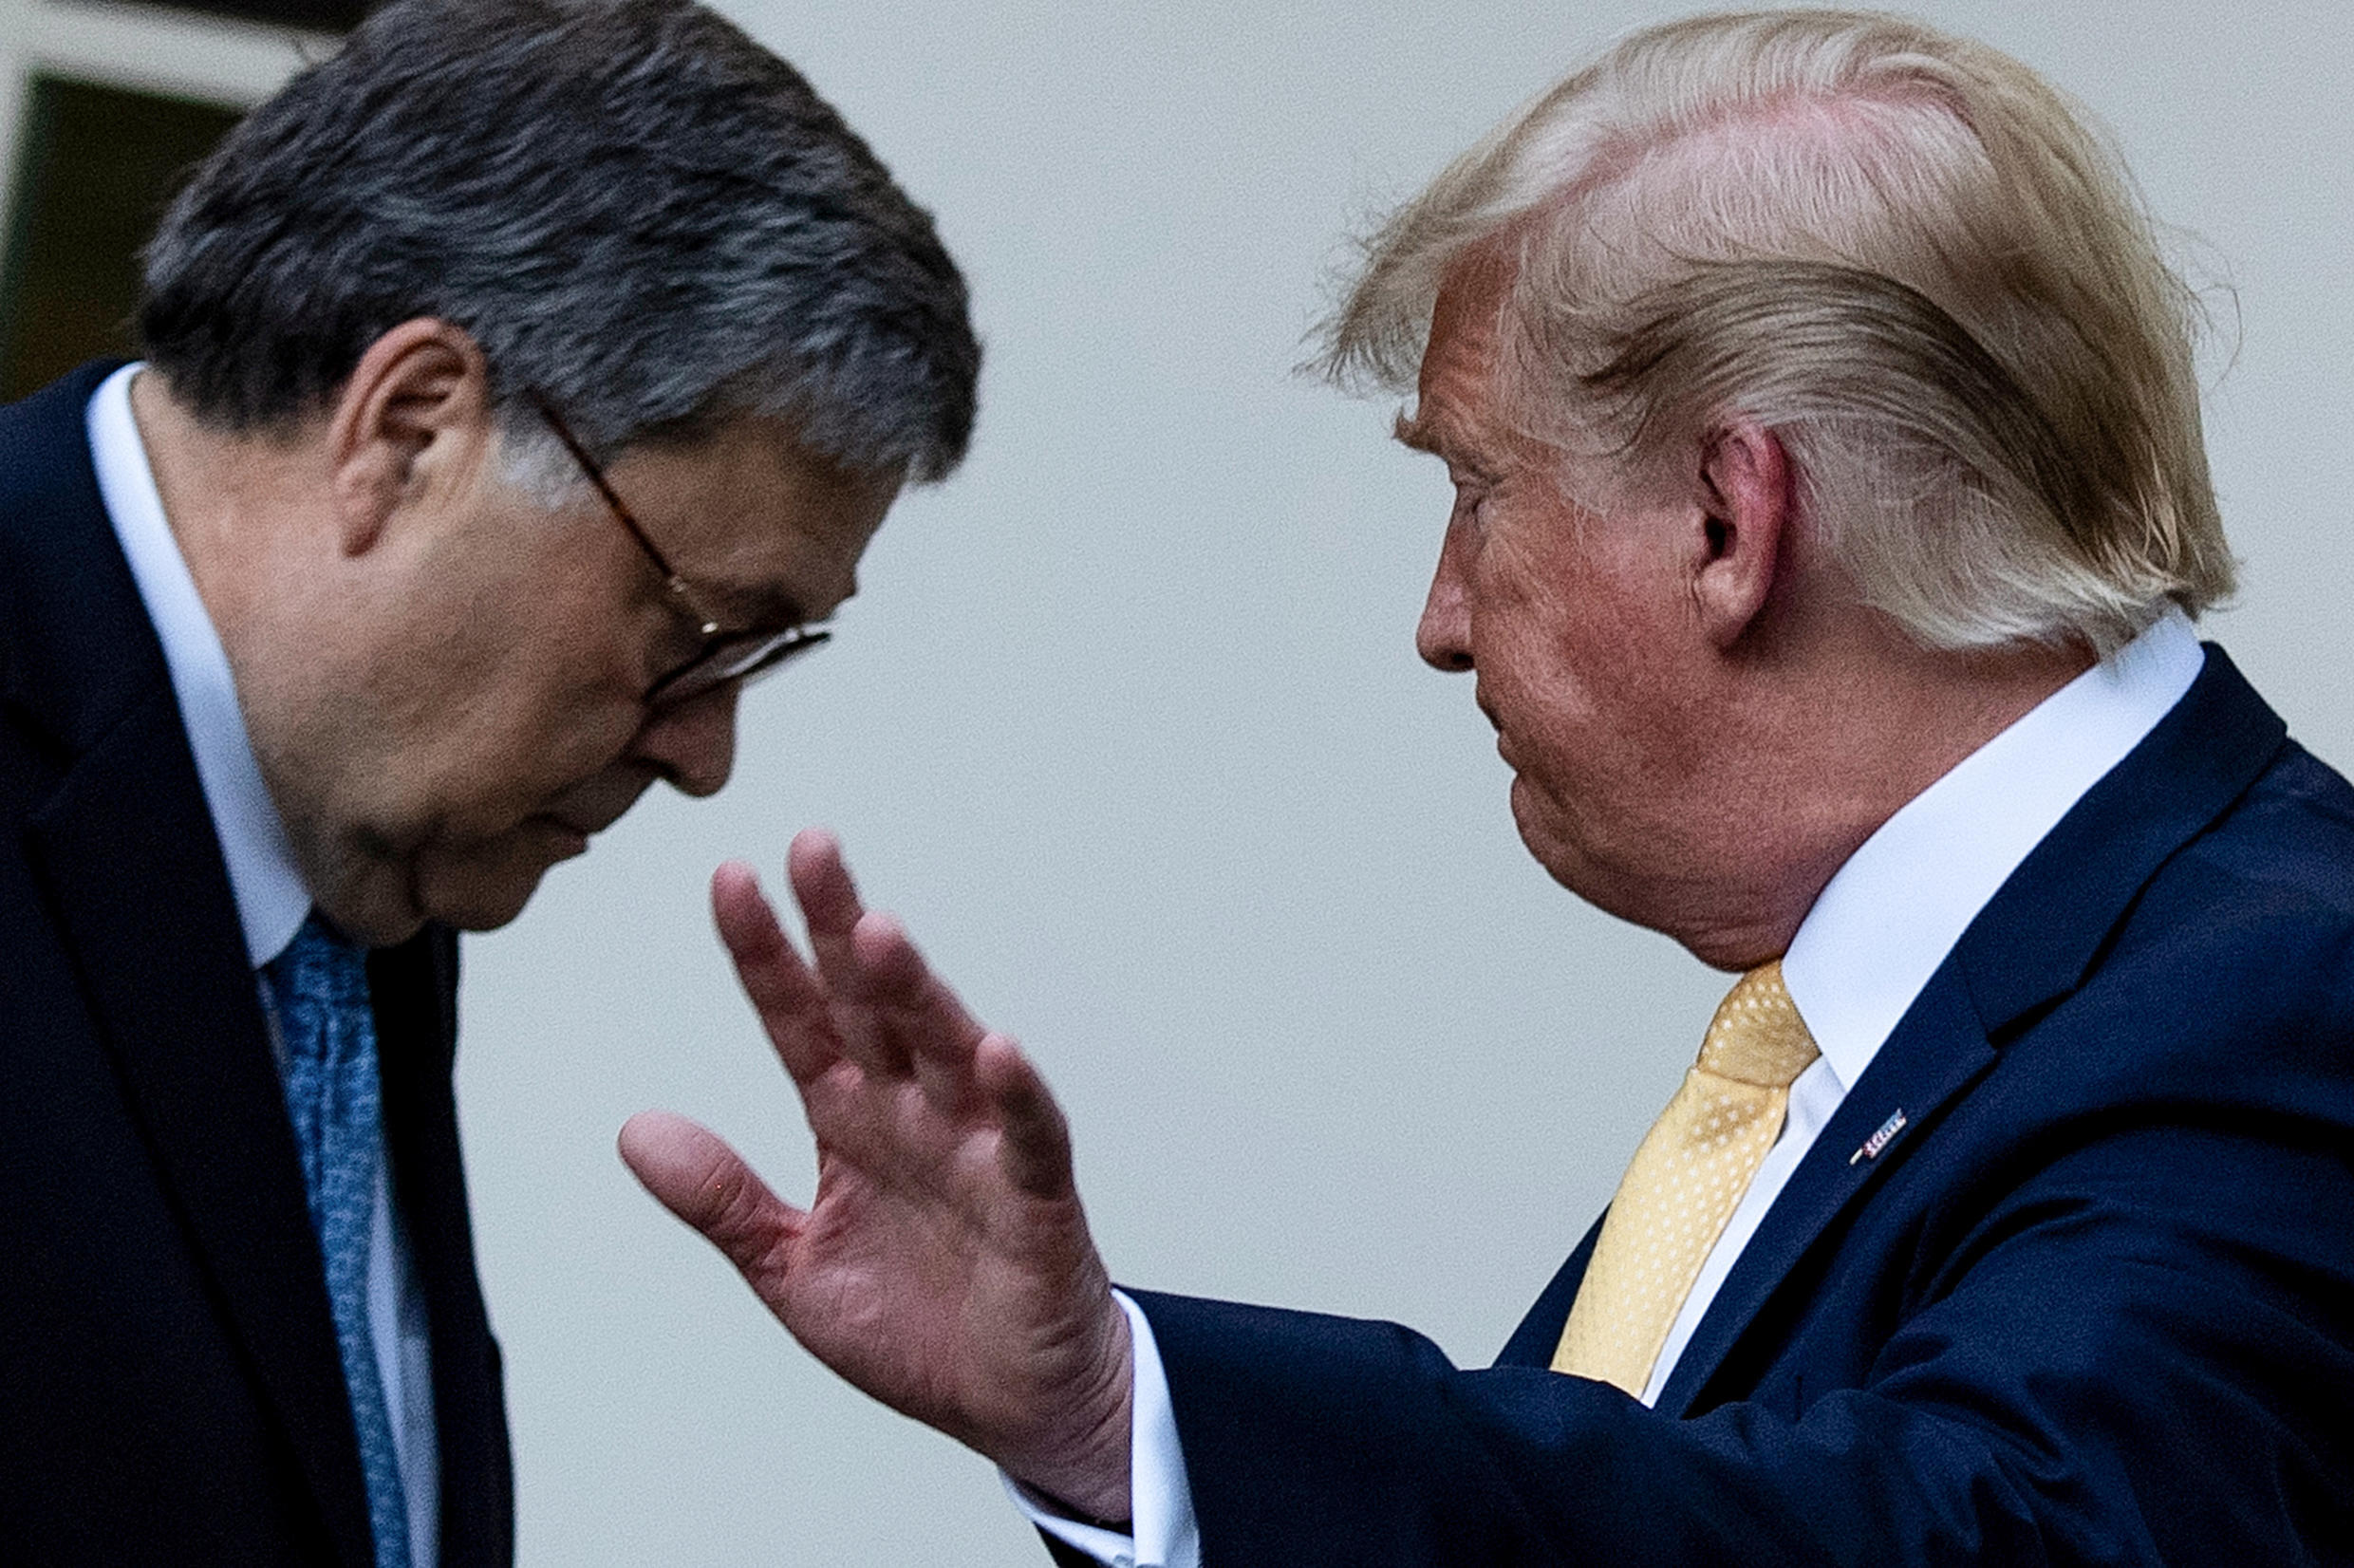 President Donald Trump wanted a fixer, but Attorney General William Barr drew a line